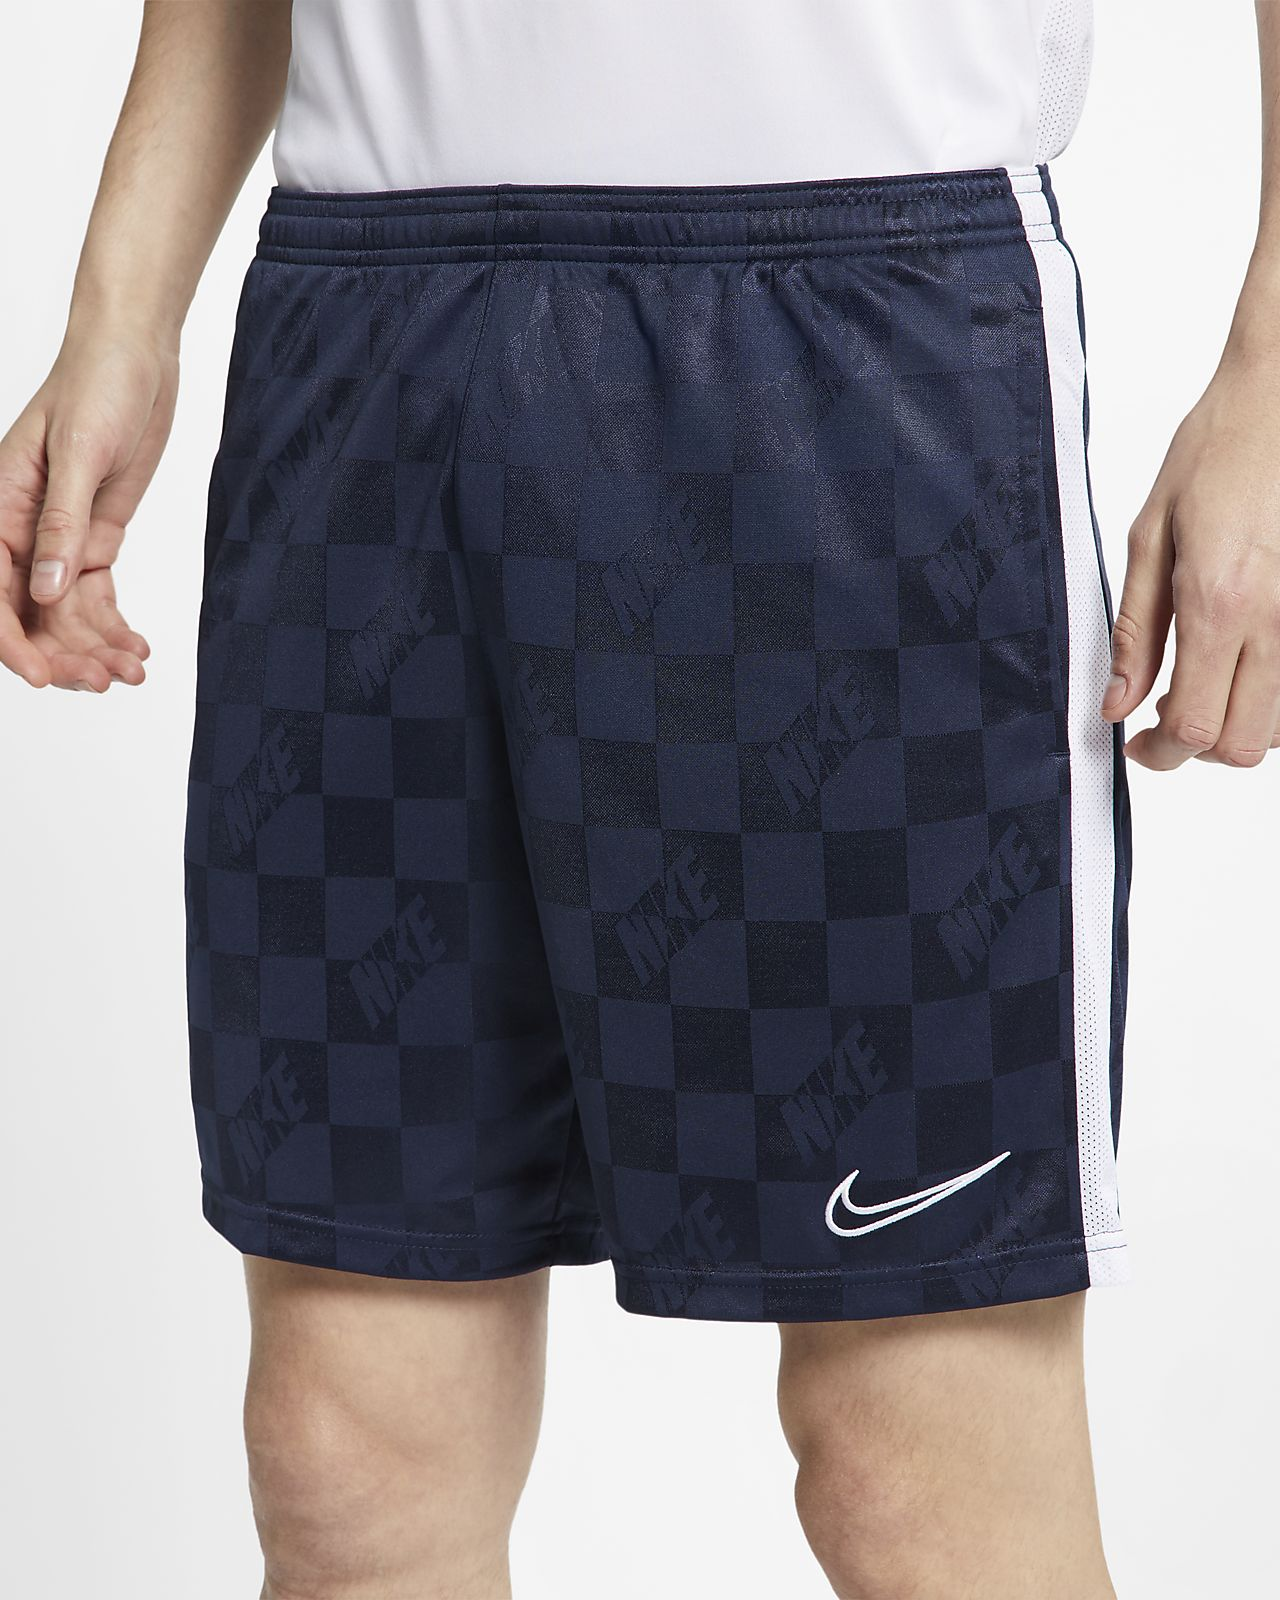 Short de football Nike Breathe Academy pour Homme